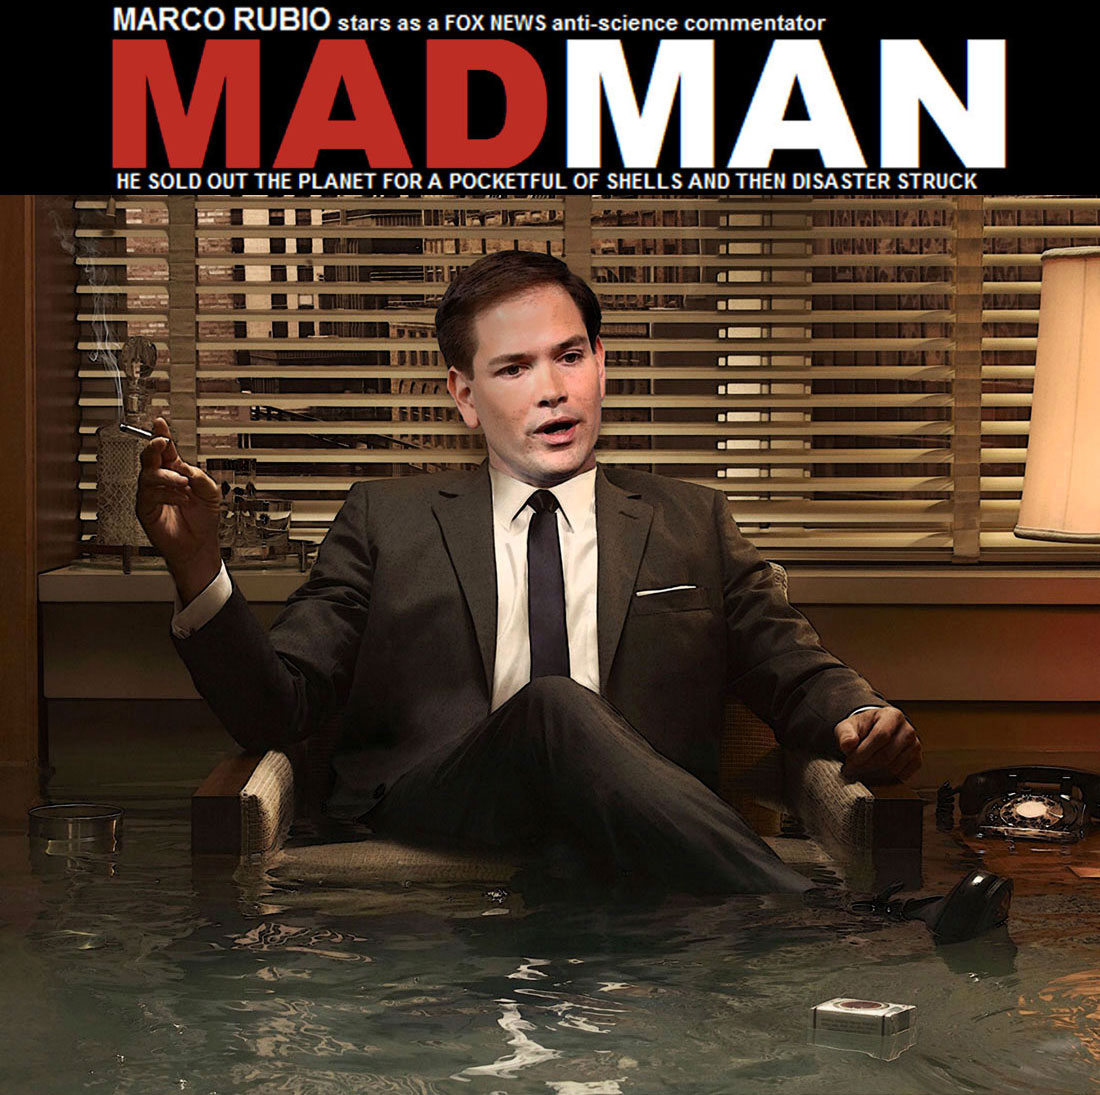 MARCO RUBIO in MADMAN